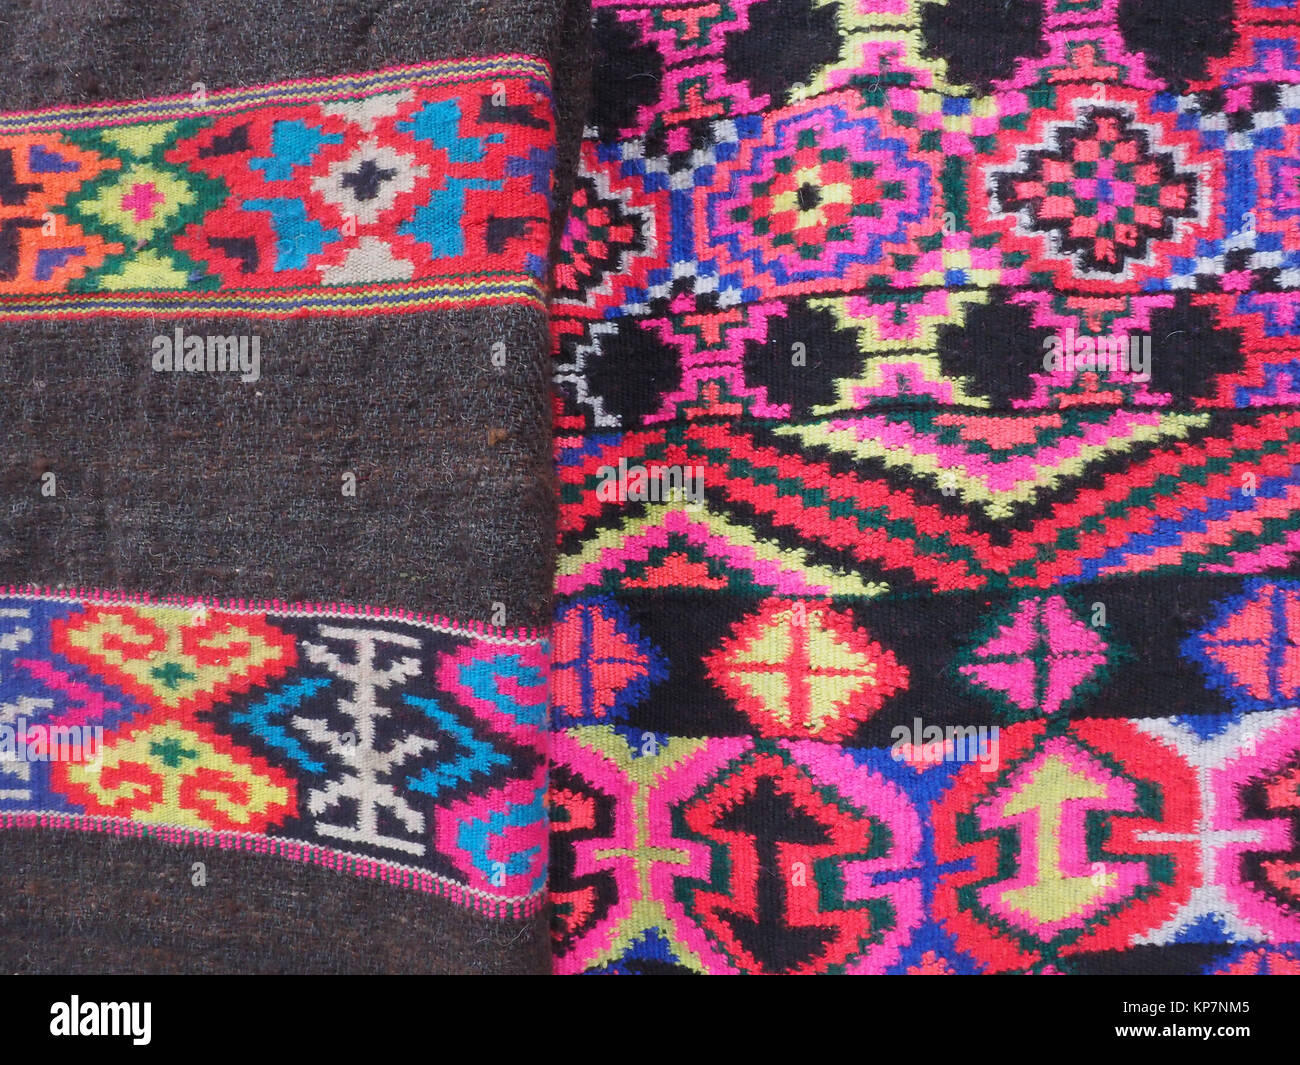 bright red pink embroidery traditional buddhist patterns in